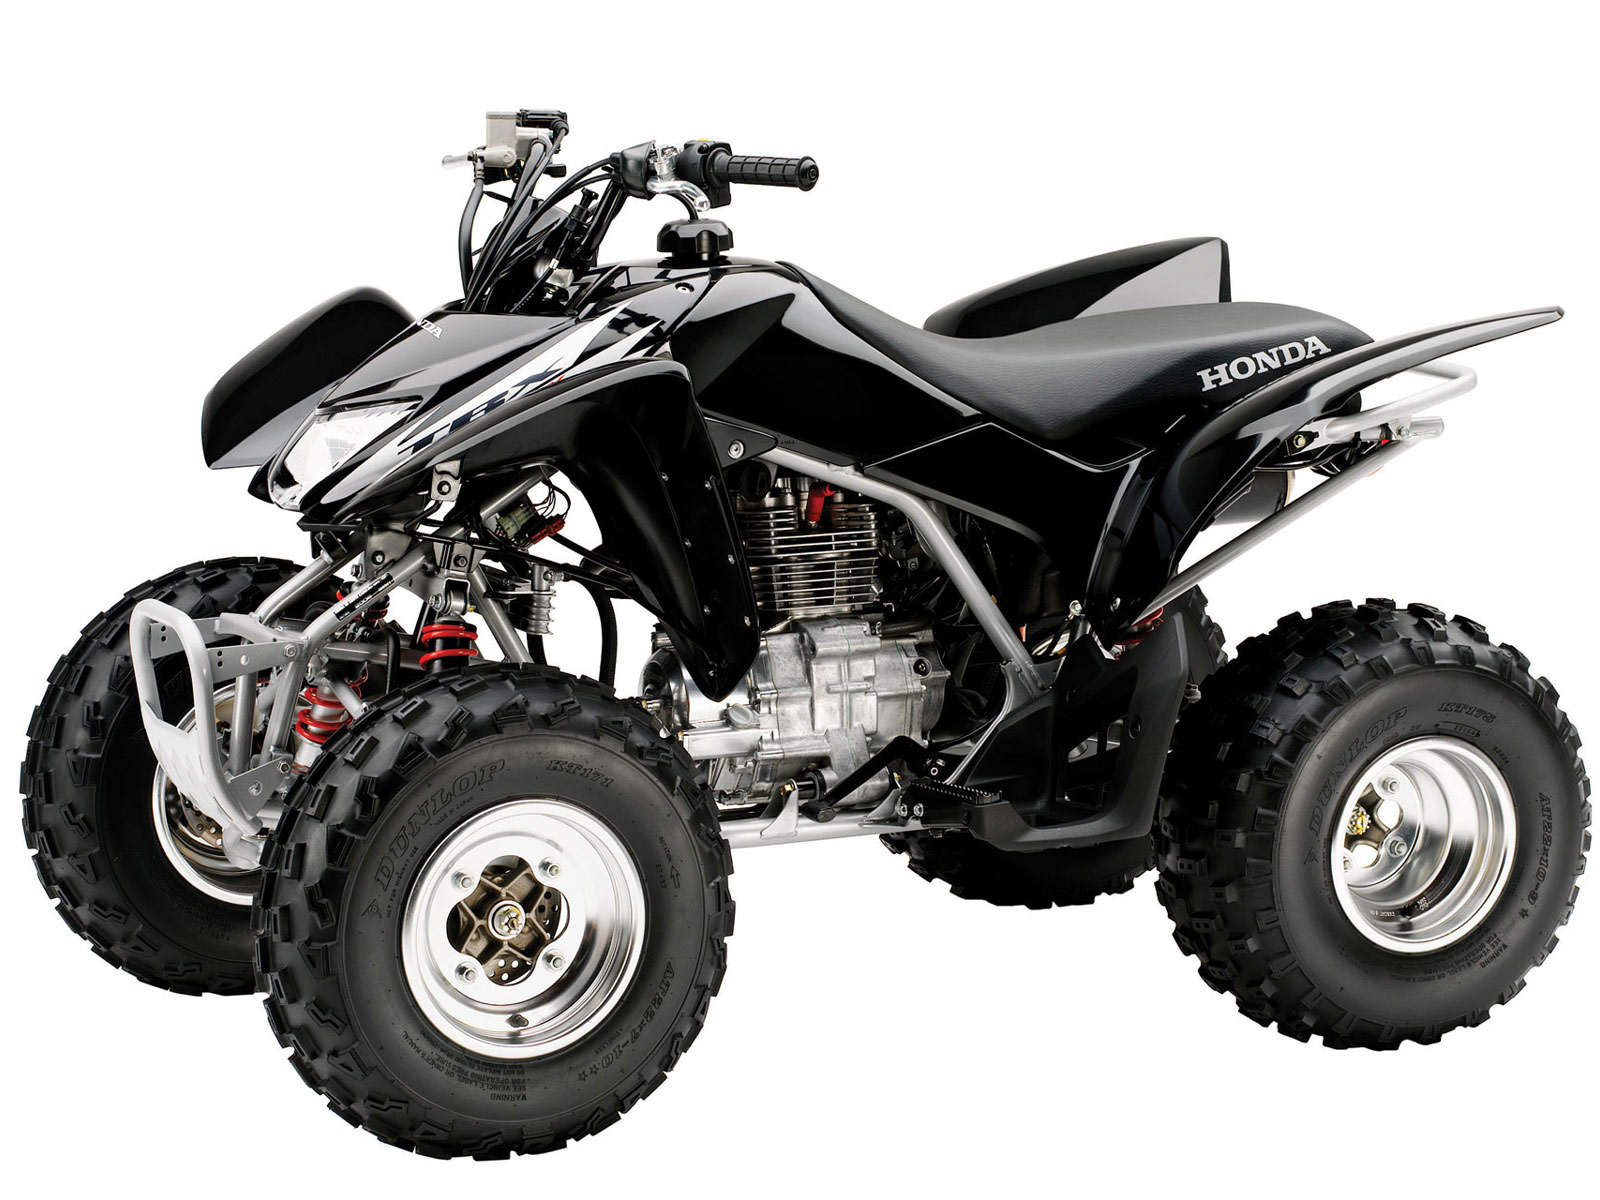 HONDA wallpaper,specifications. Car, motorcycle, scooter,ATV